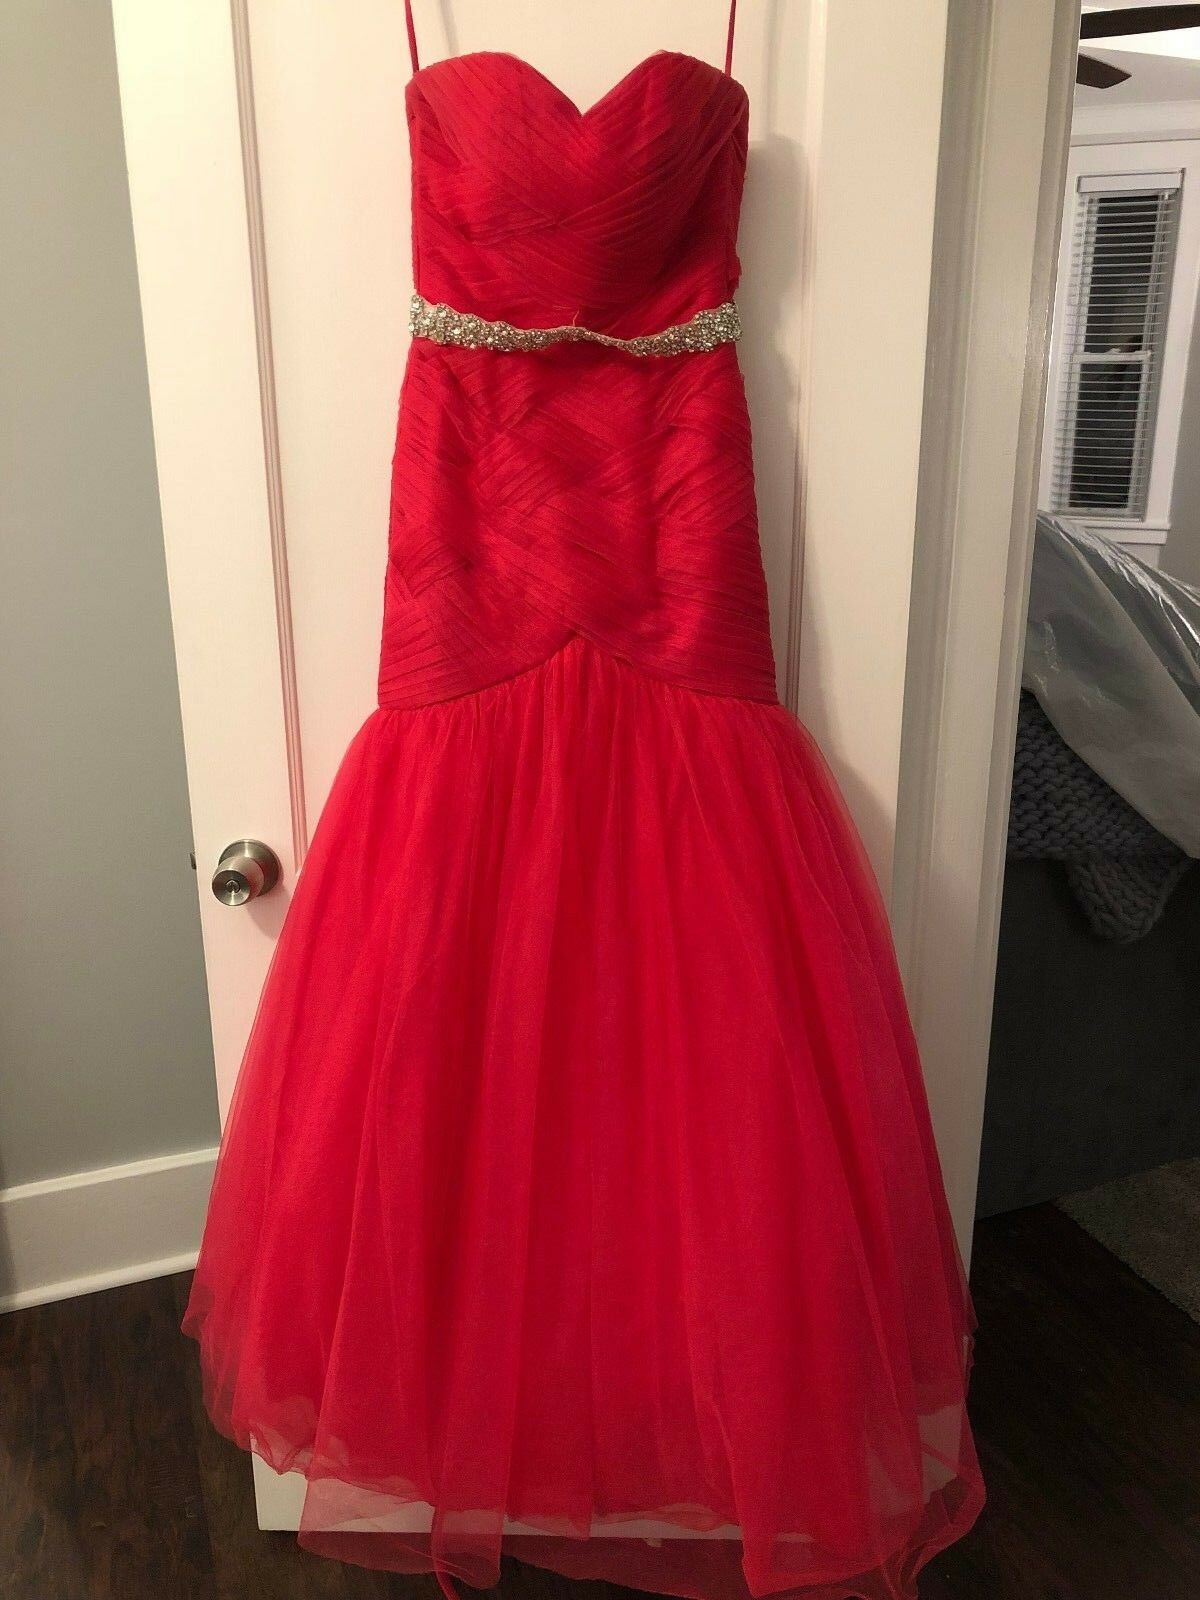 Maggie Sottero Pink Prom Dress - Size 0